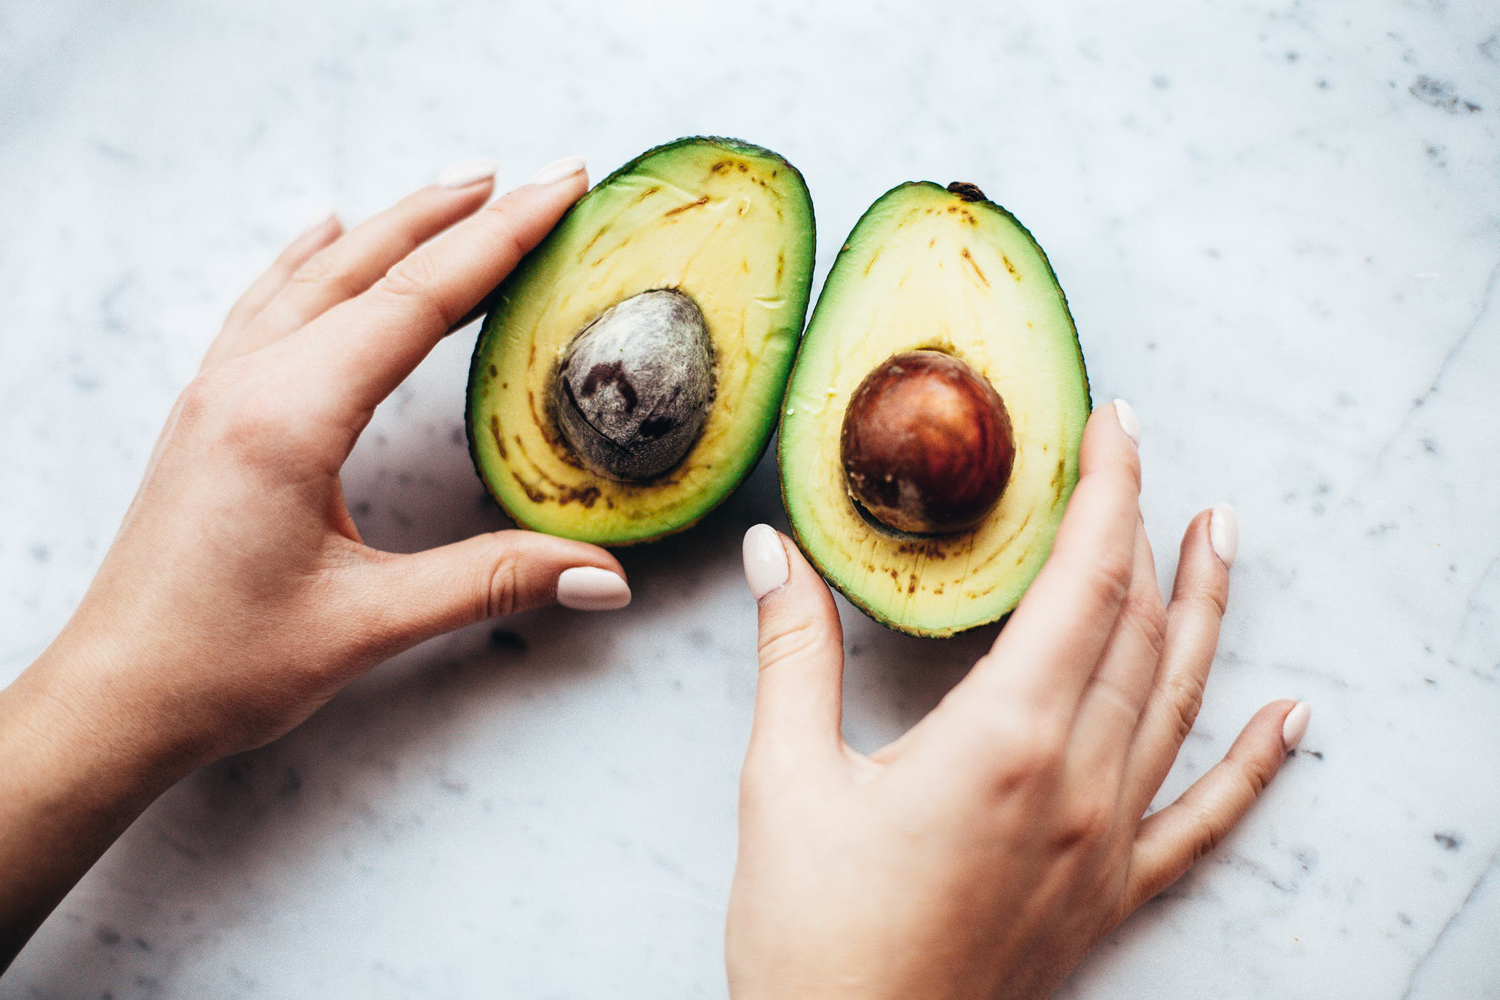 two female hands are showing a cut avocado